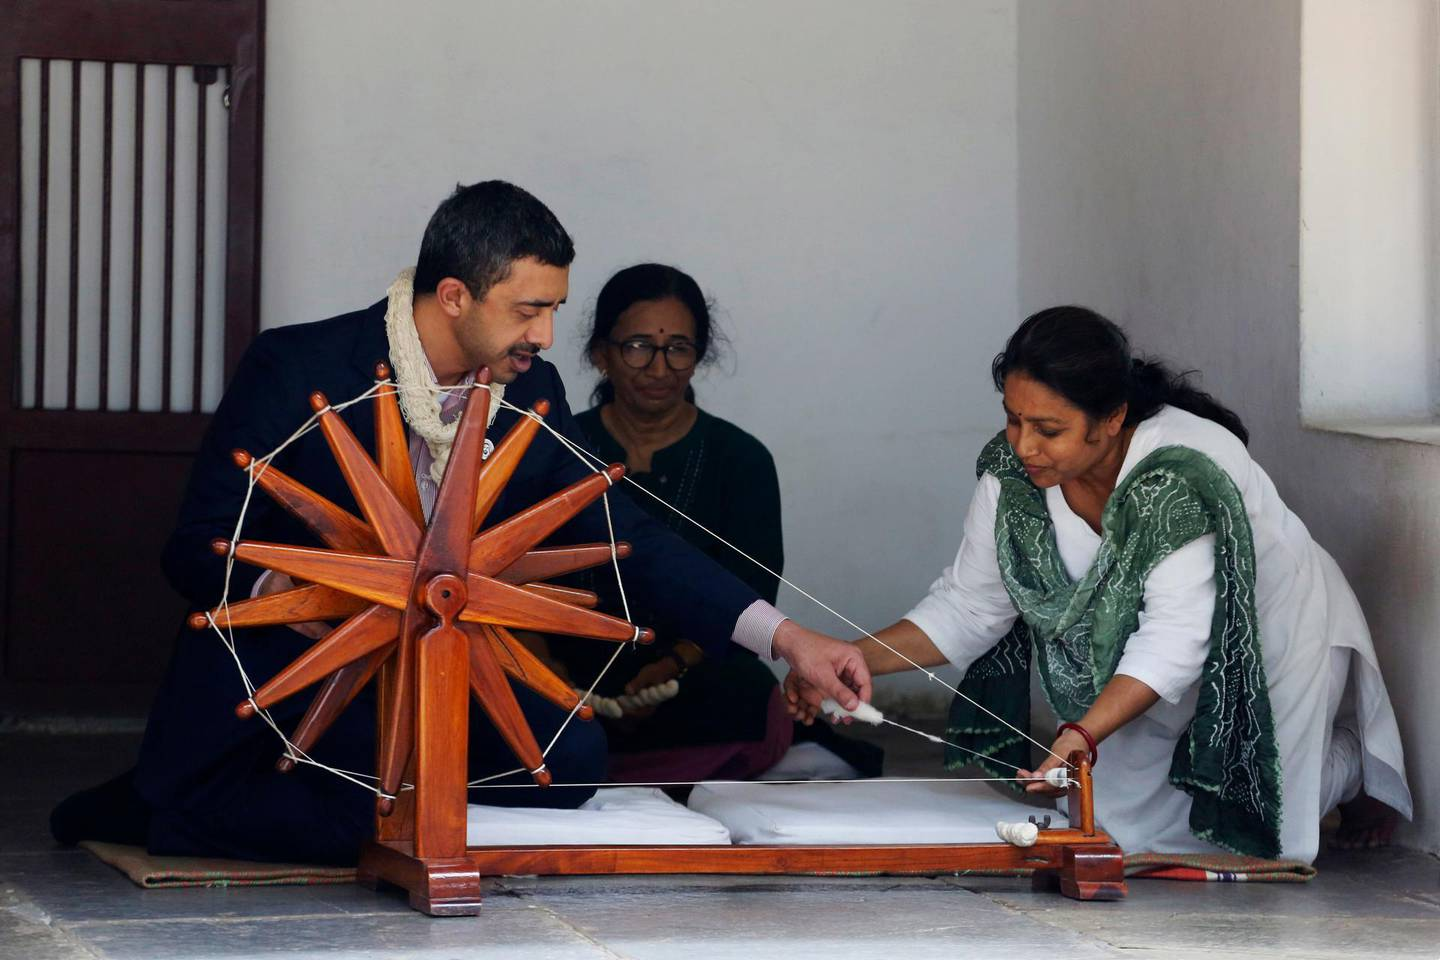 UAE Foreign Minister Abdullah bin Zayed Al Nahyan tries his hands on a spinning wheel during his visit to the Mahatma Gandhi Ashram in Ahmadabad, India, Wednesday, June 27, 2018. (AP Photo/Ajit Solanki)